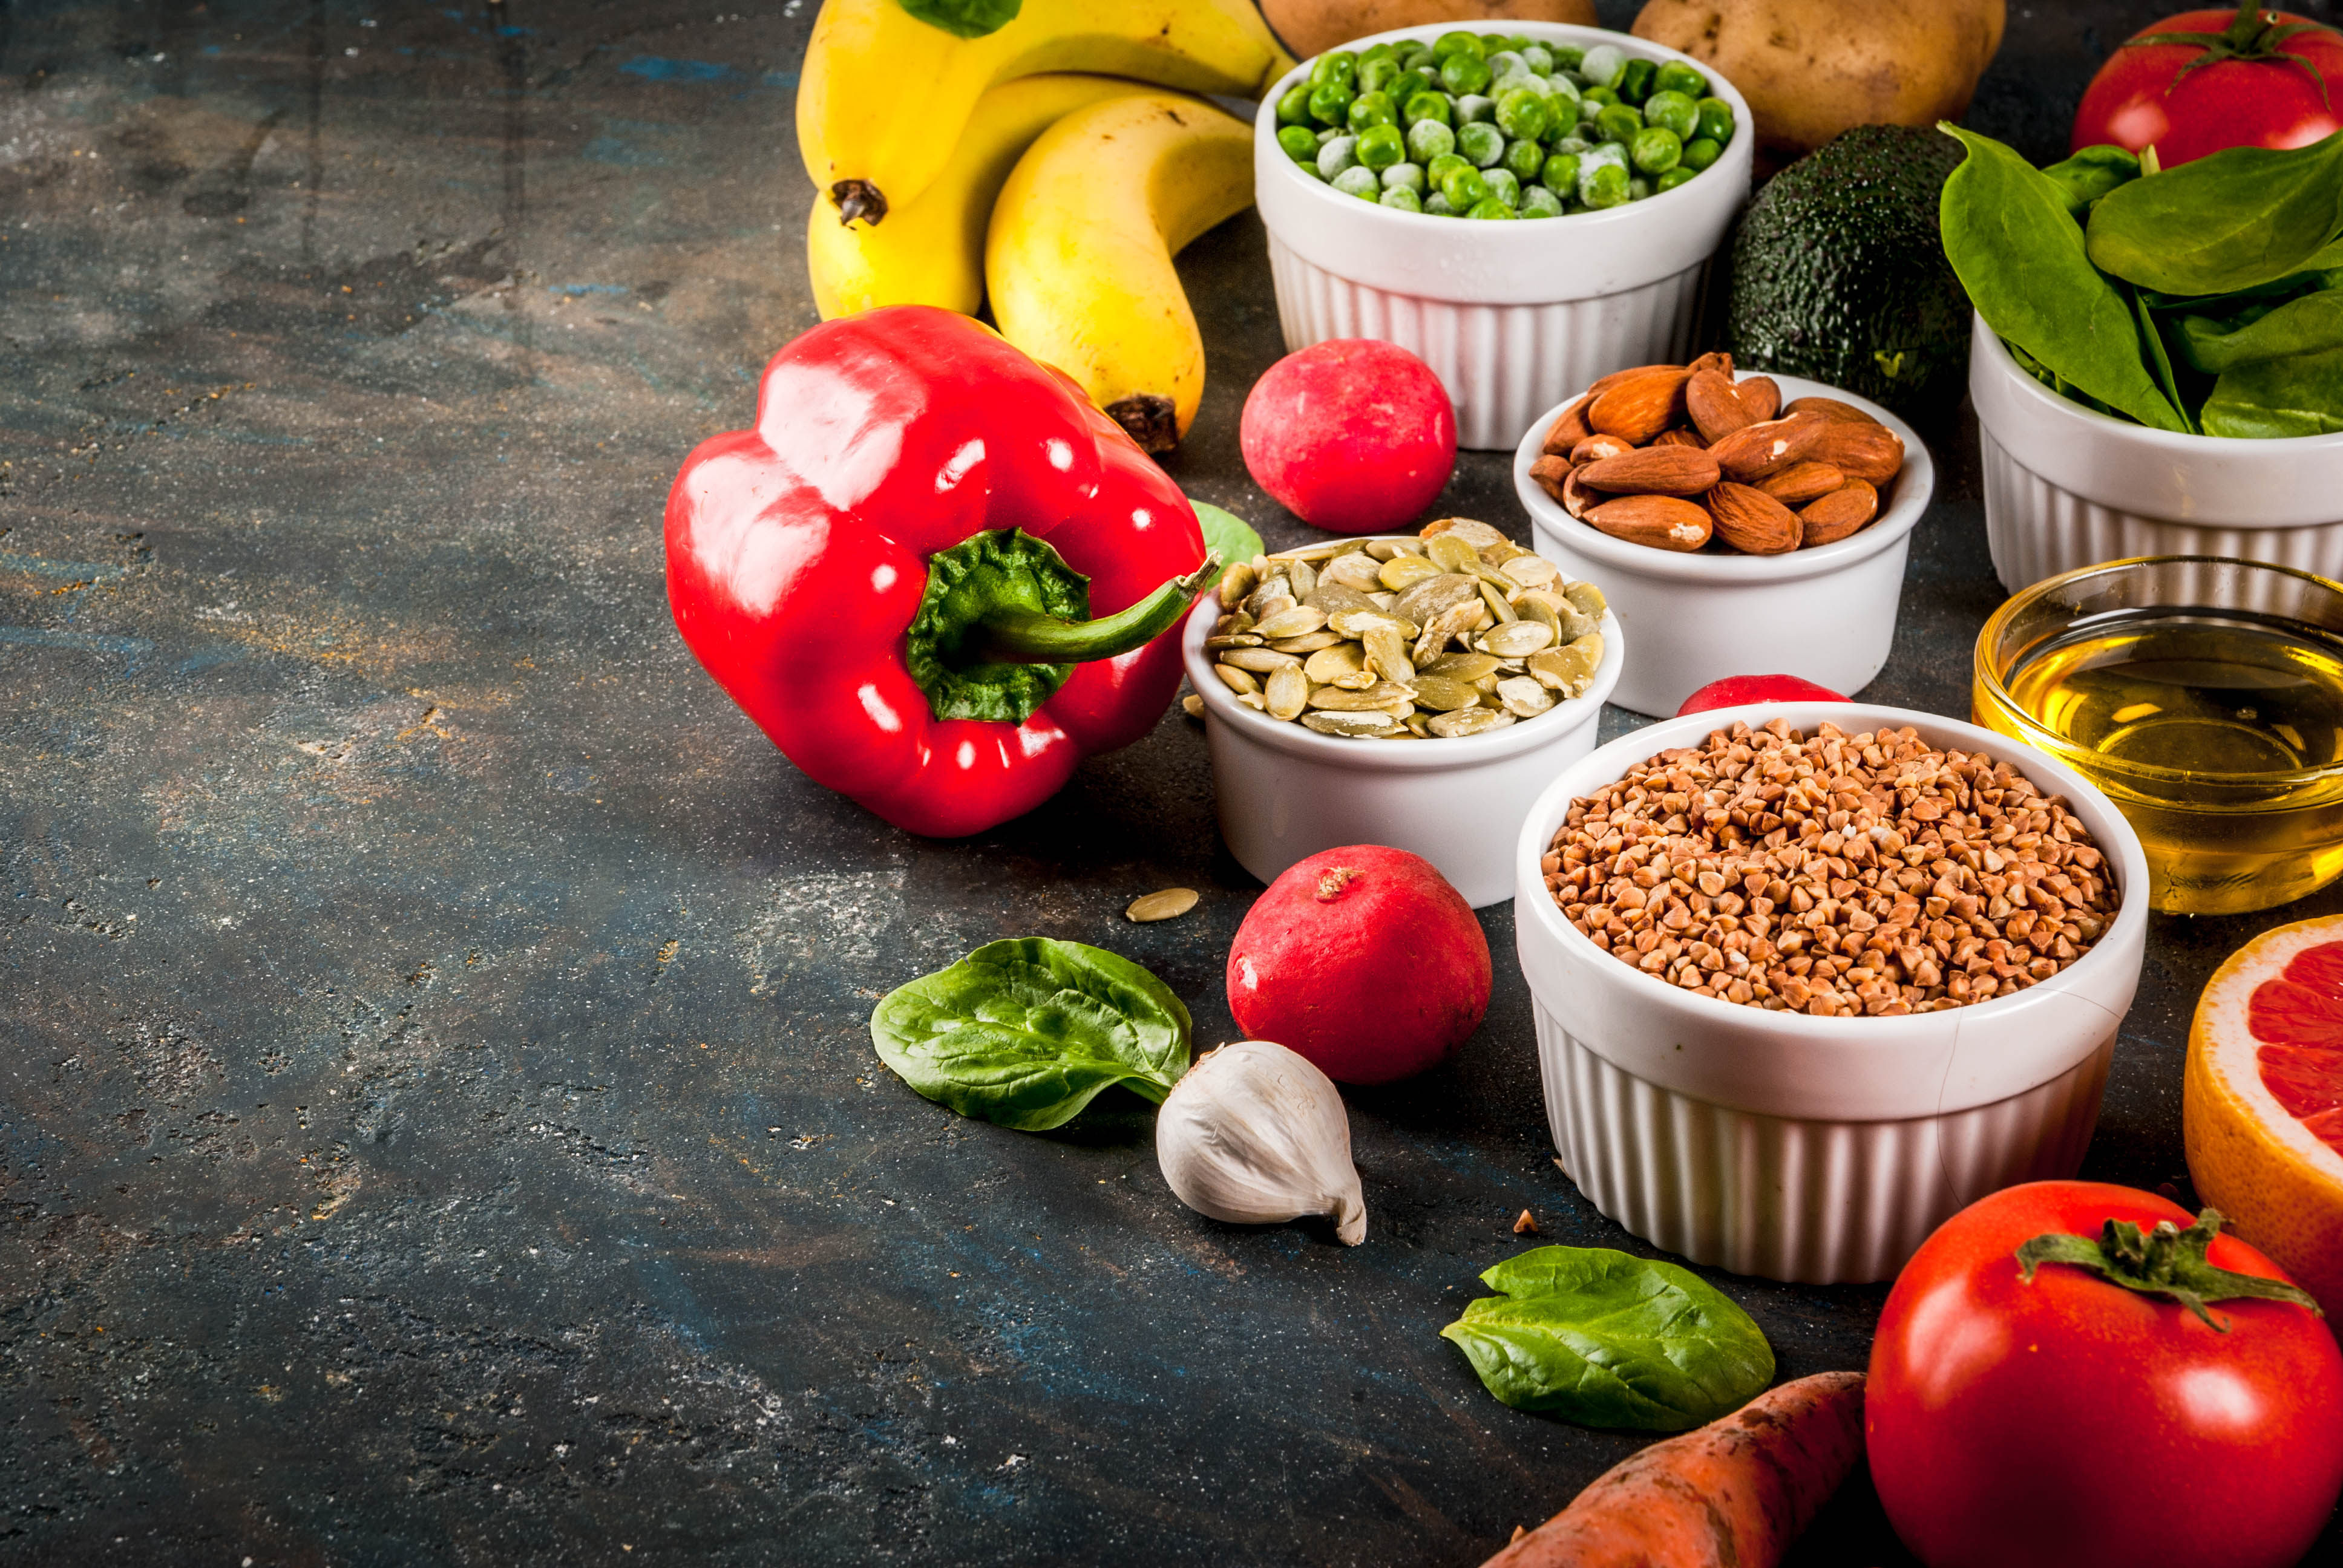 Various Fruit, Vegetables, and Nuts on a table